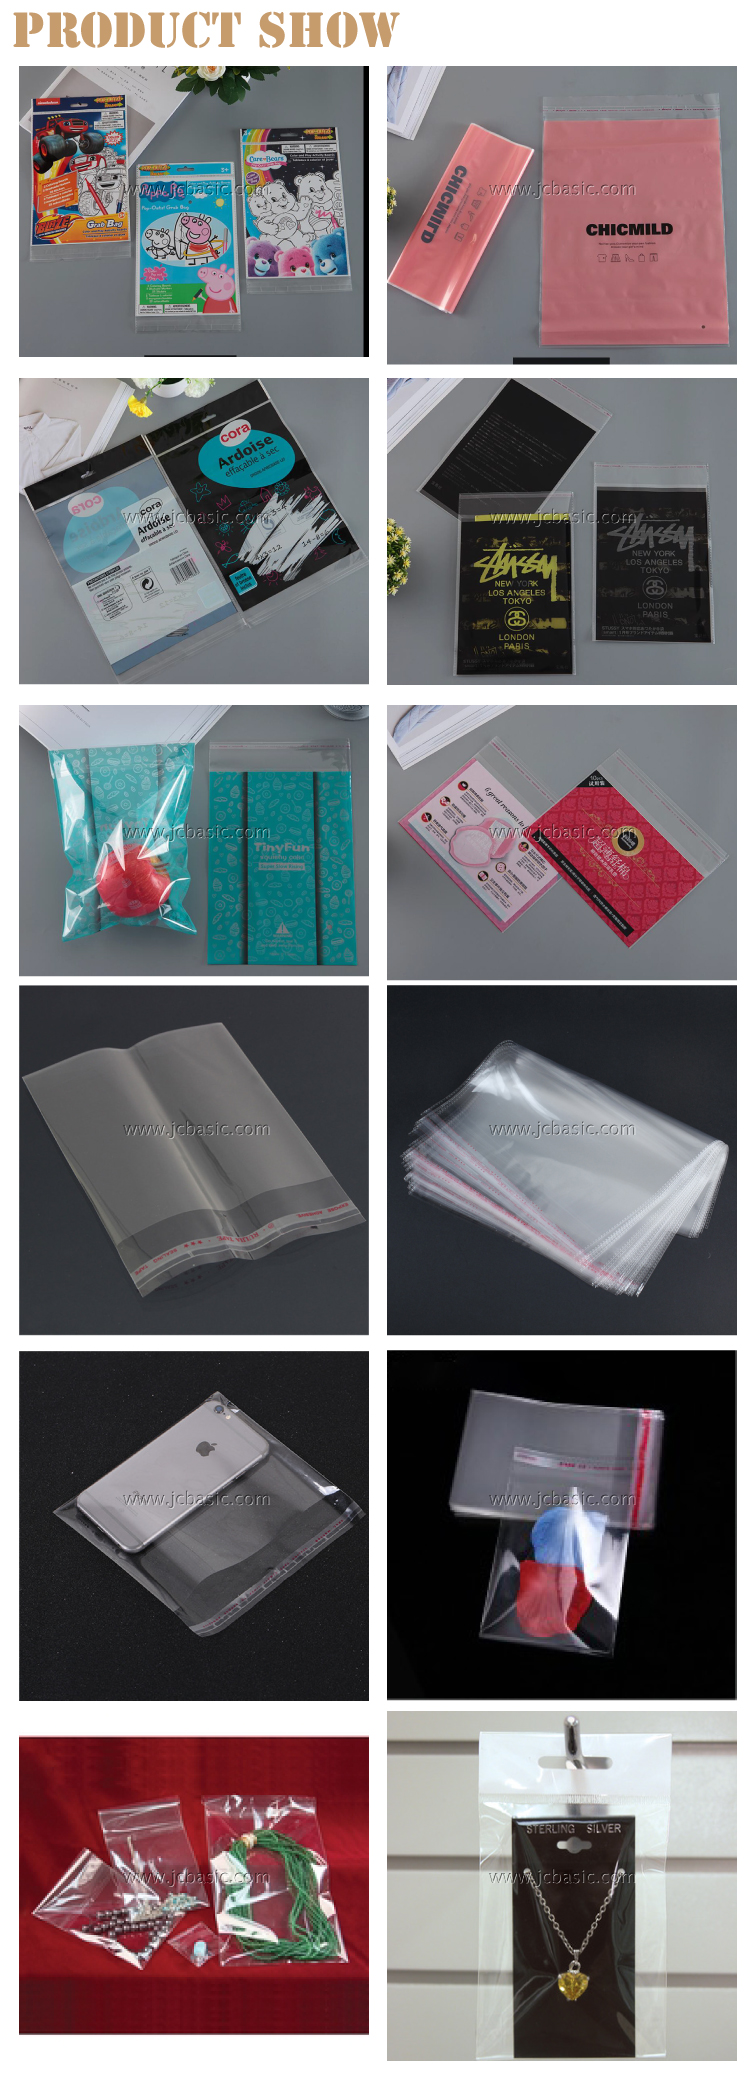 China Factory High Quality Customized design OPP clear plastic bags Laminated Bags for meat,pork,beef,sea food